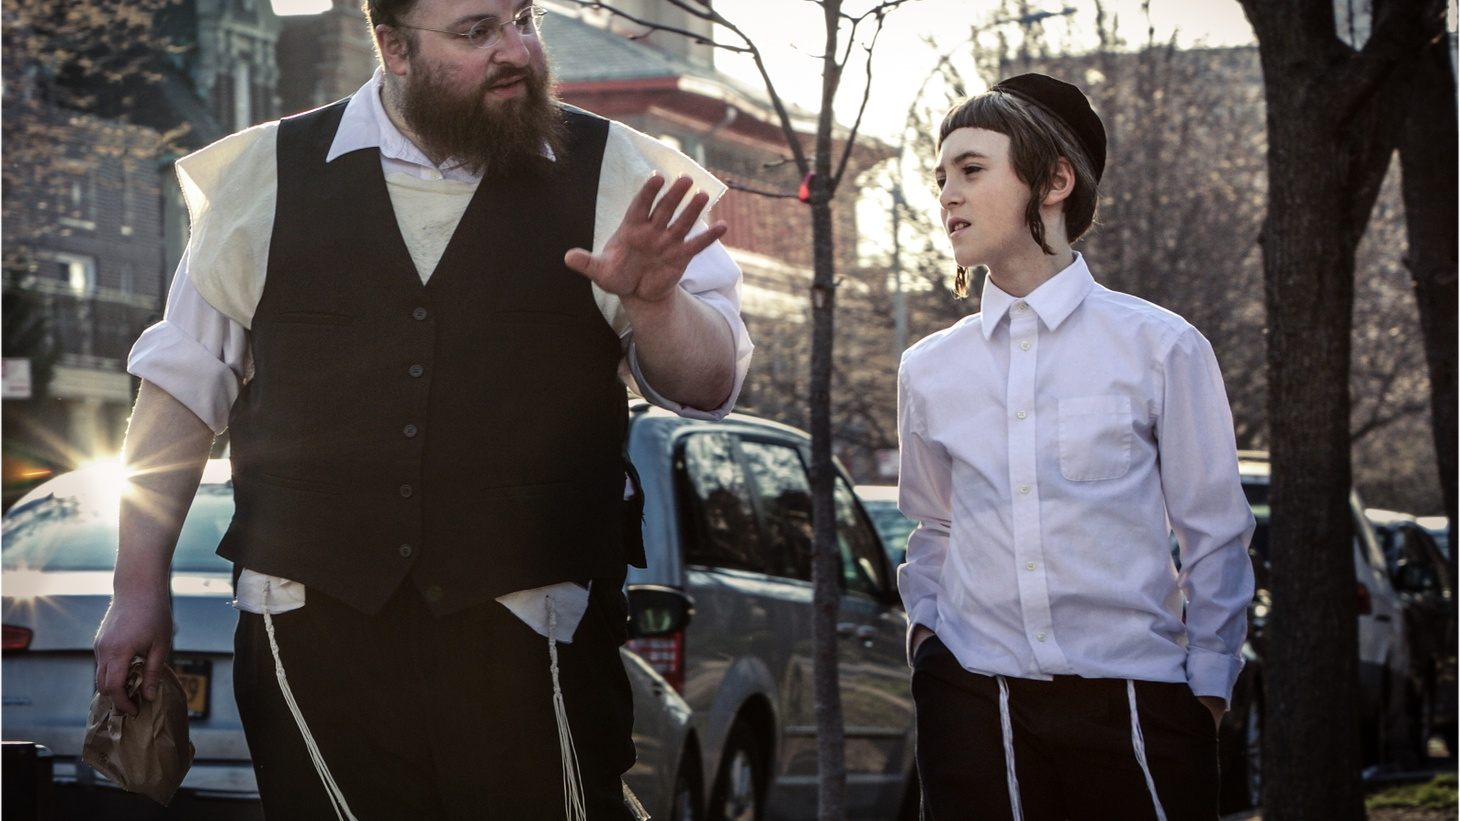 """""""Menashe"""" is a new movie about life inside New York's hasidic community. The director talks about shooting a movie on location where you're not wanted, with actors who've never been in a movie or seen a movie before.      Menashe Lustig and Ruben Niborski in """"Menashe."""" (Photo by Federica Valabrega, courtesy of A24)"""